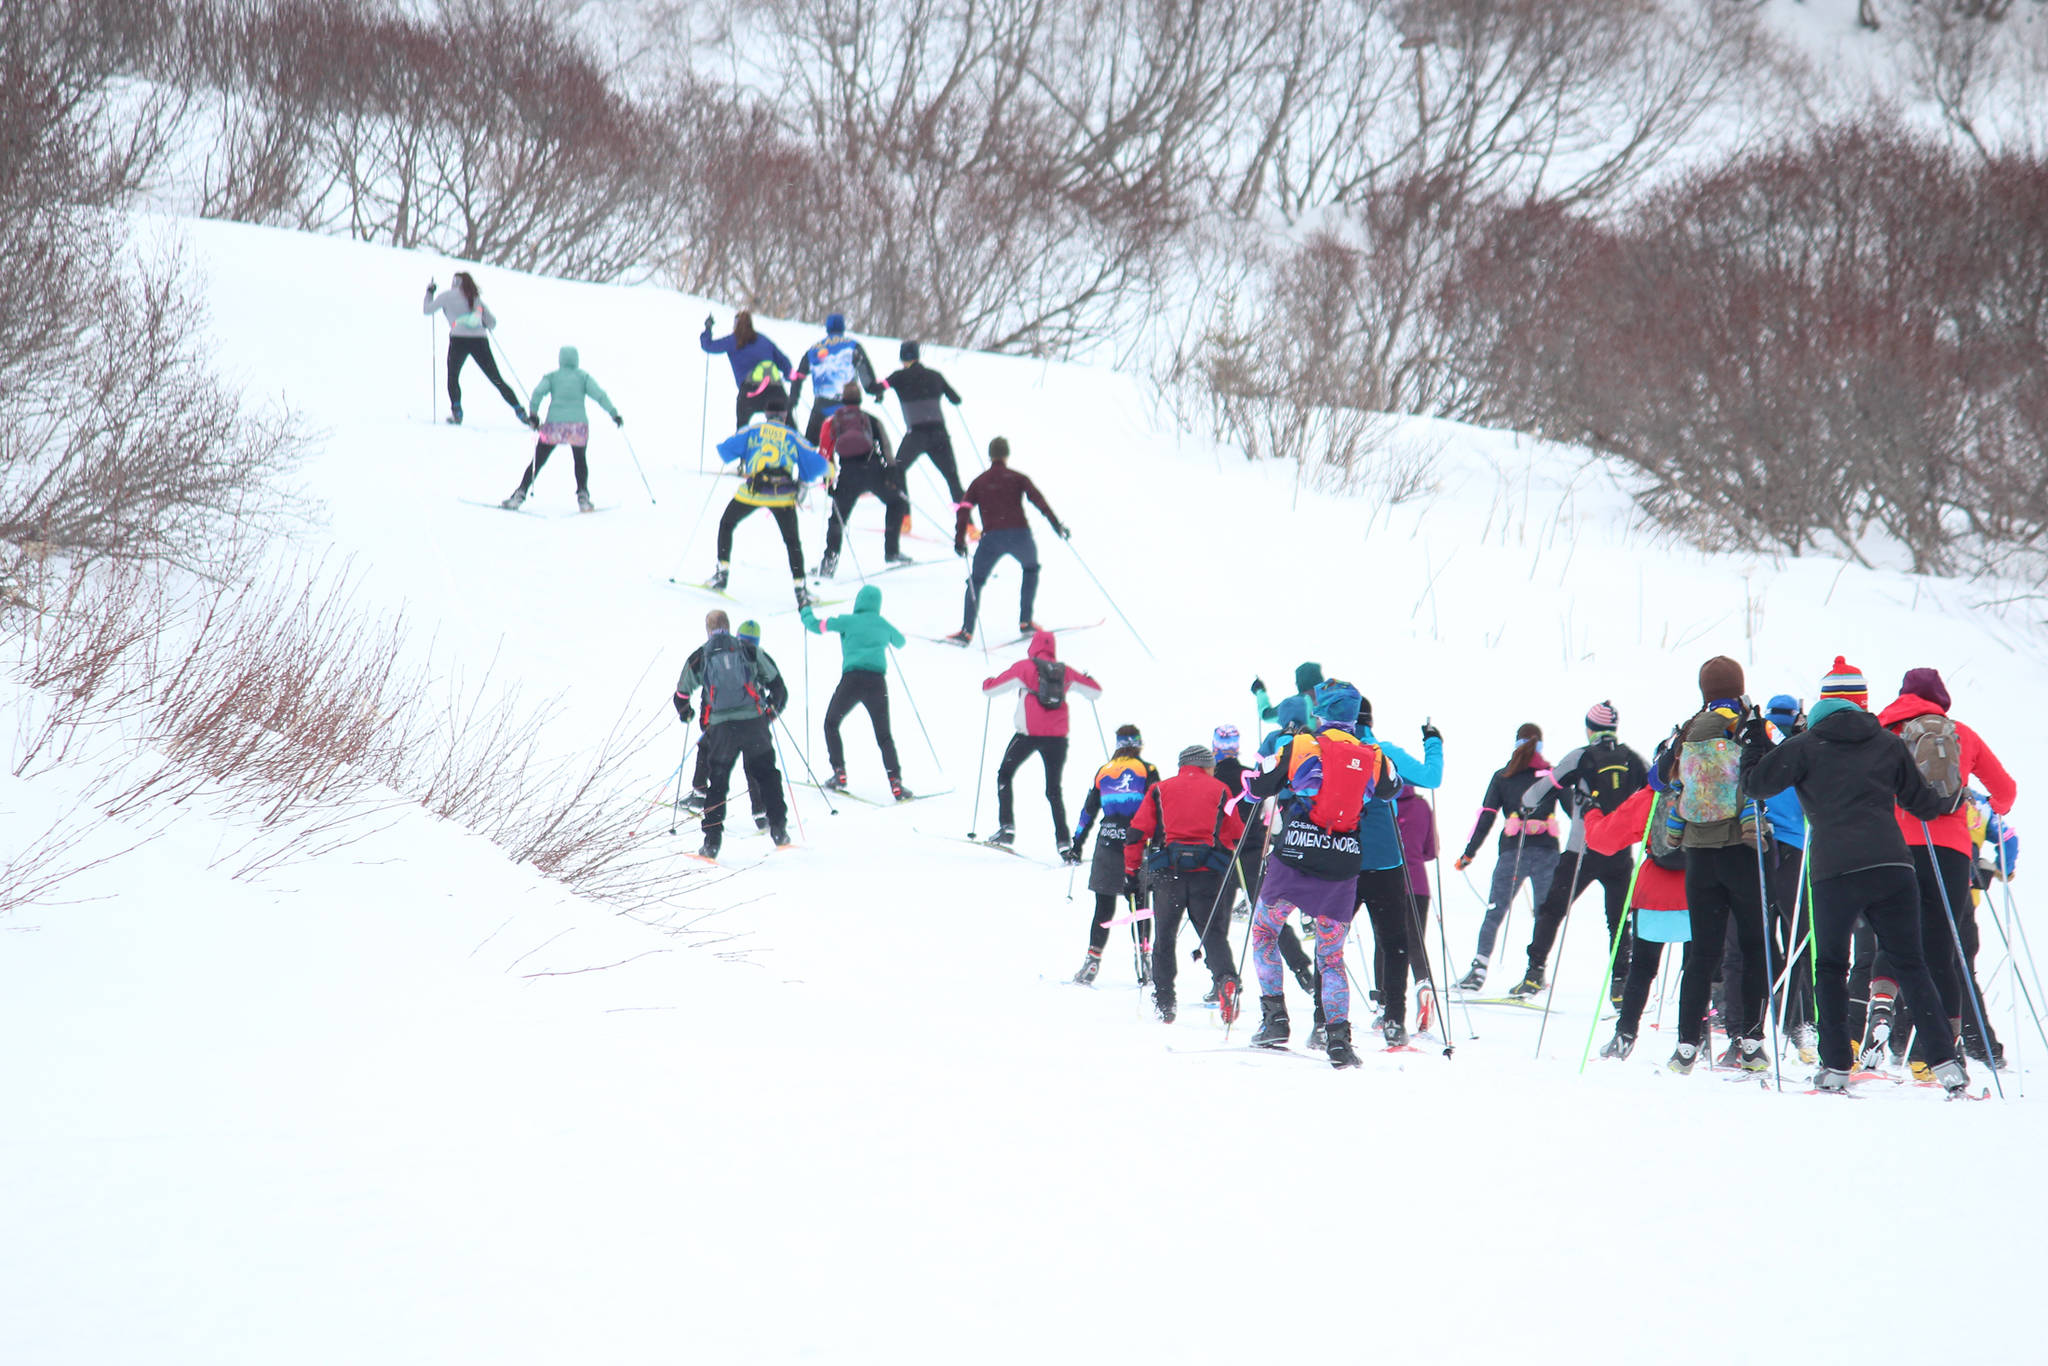 Participants in the 25 kilometer portion of the Kachemak Nordic Ski Marathon take off up the first hill of the course Saturday, March 9, 2019 at the Lookout Mountain Trails near Homer, Alaska. (Photo by Megan Pacer/Homer News)